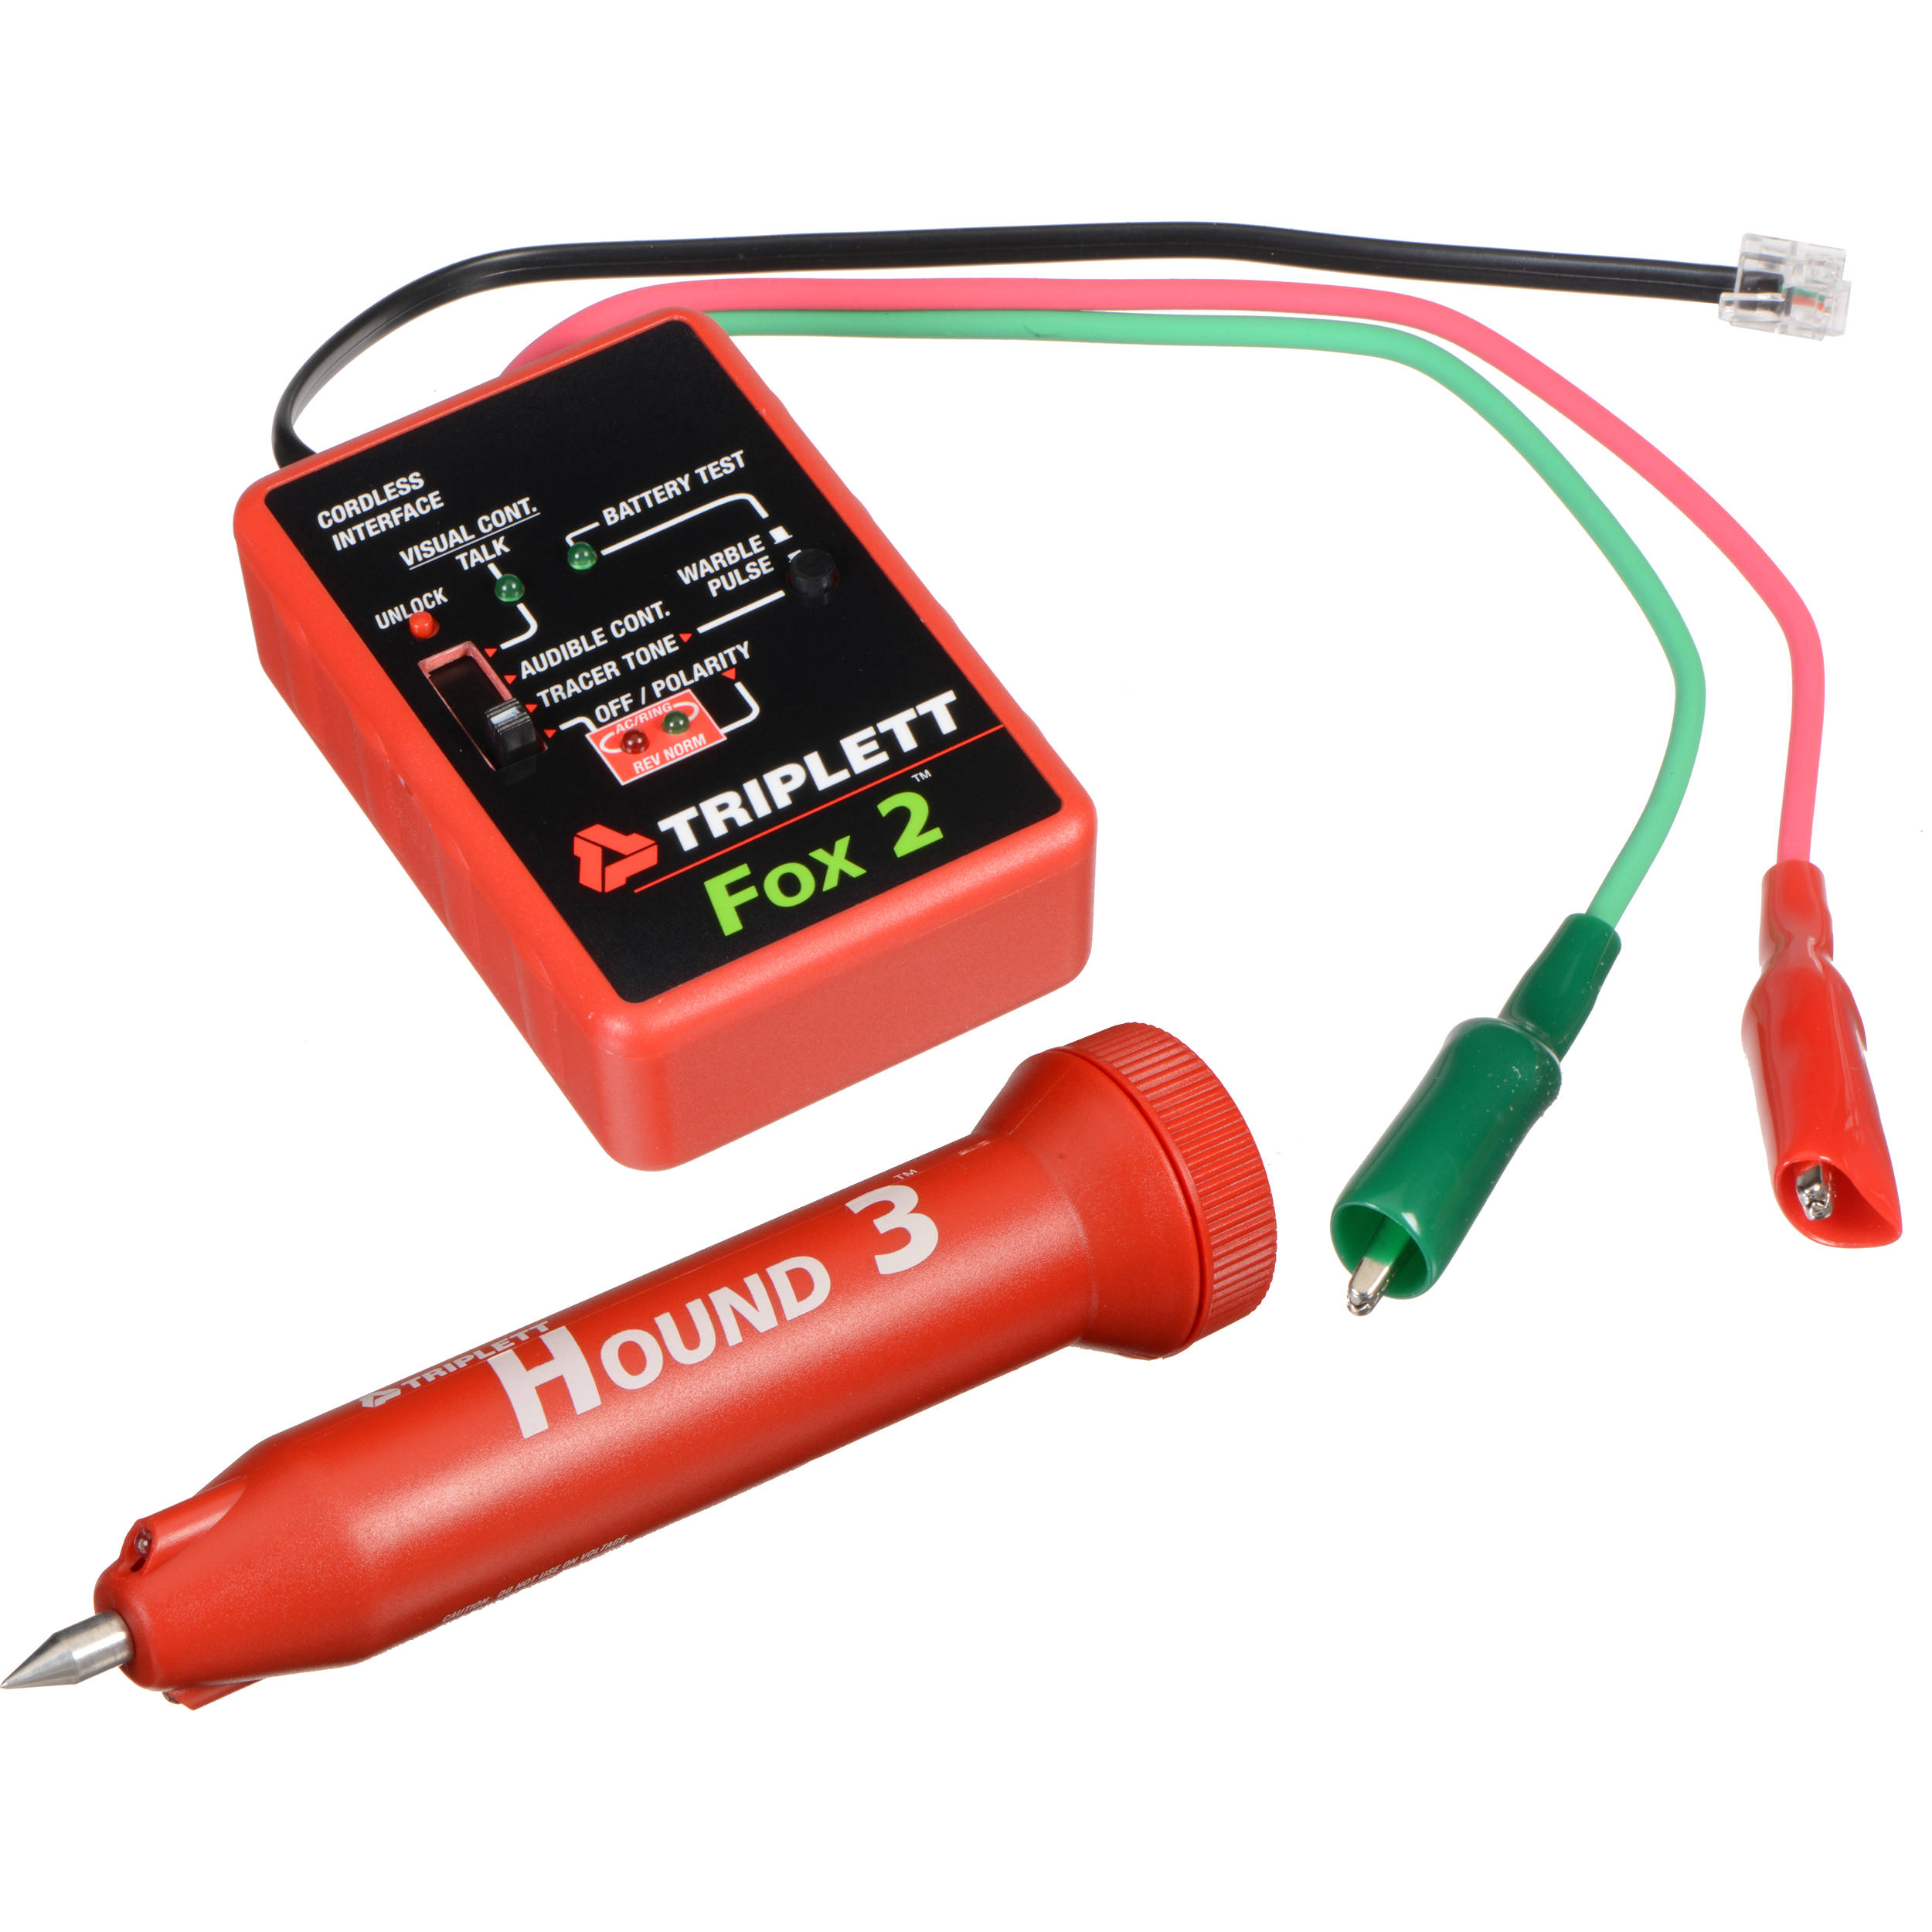 Triplett Fox Hound Wire Tracing Toner Probe Kit 3399 Cable Tracker Open Circuit Tester Testers